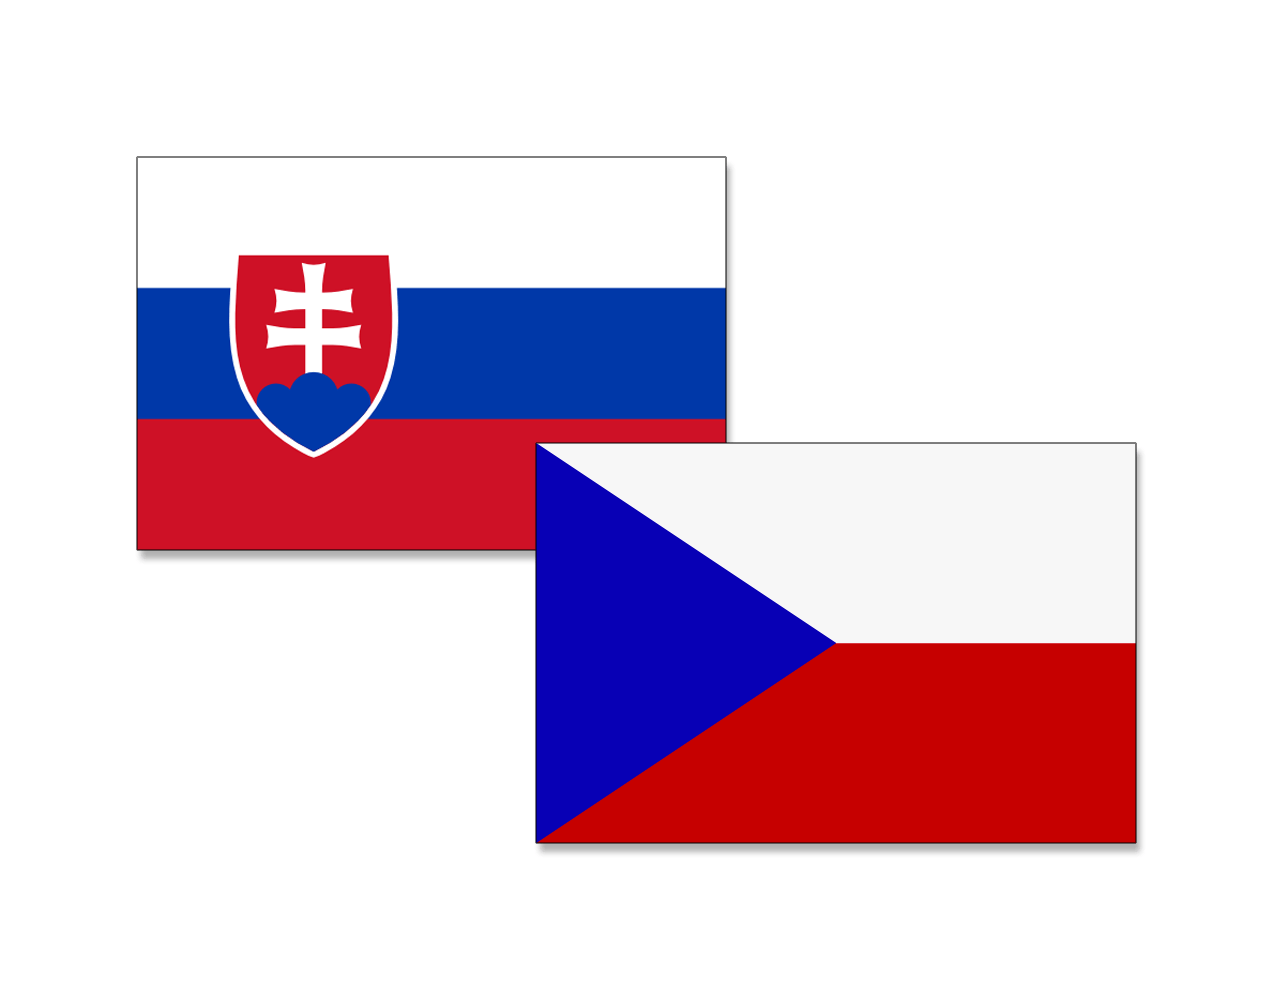 The flags of Slovenia & Czechia